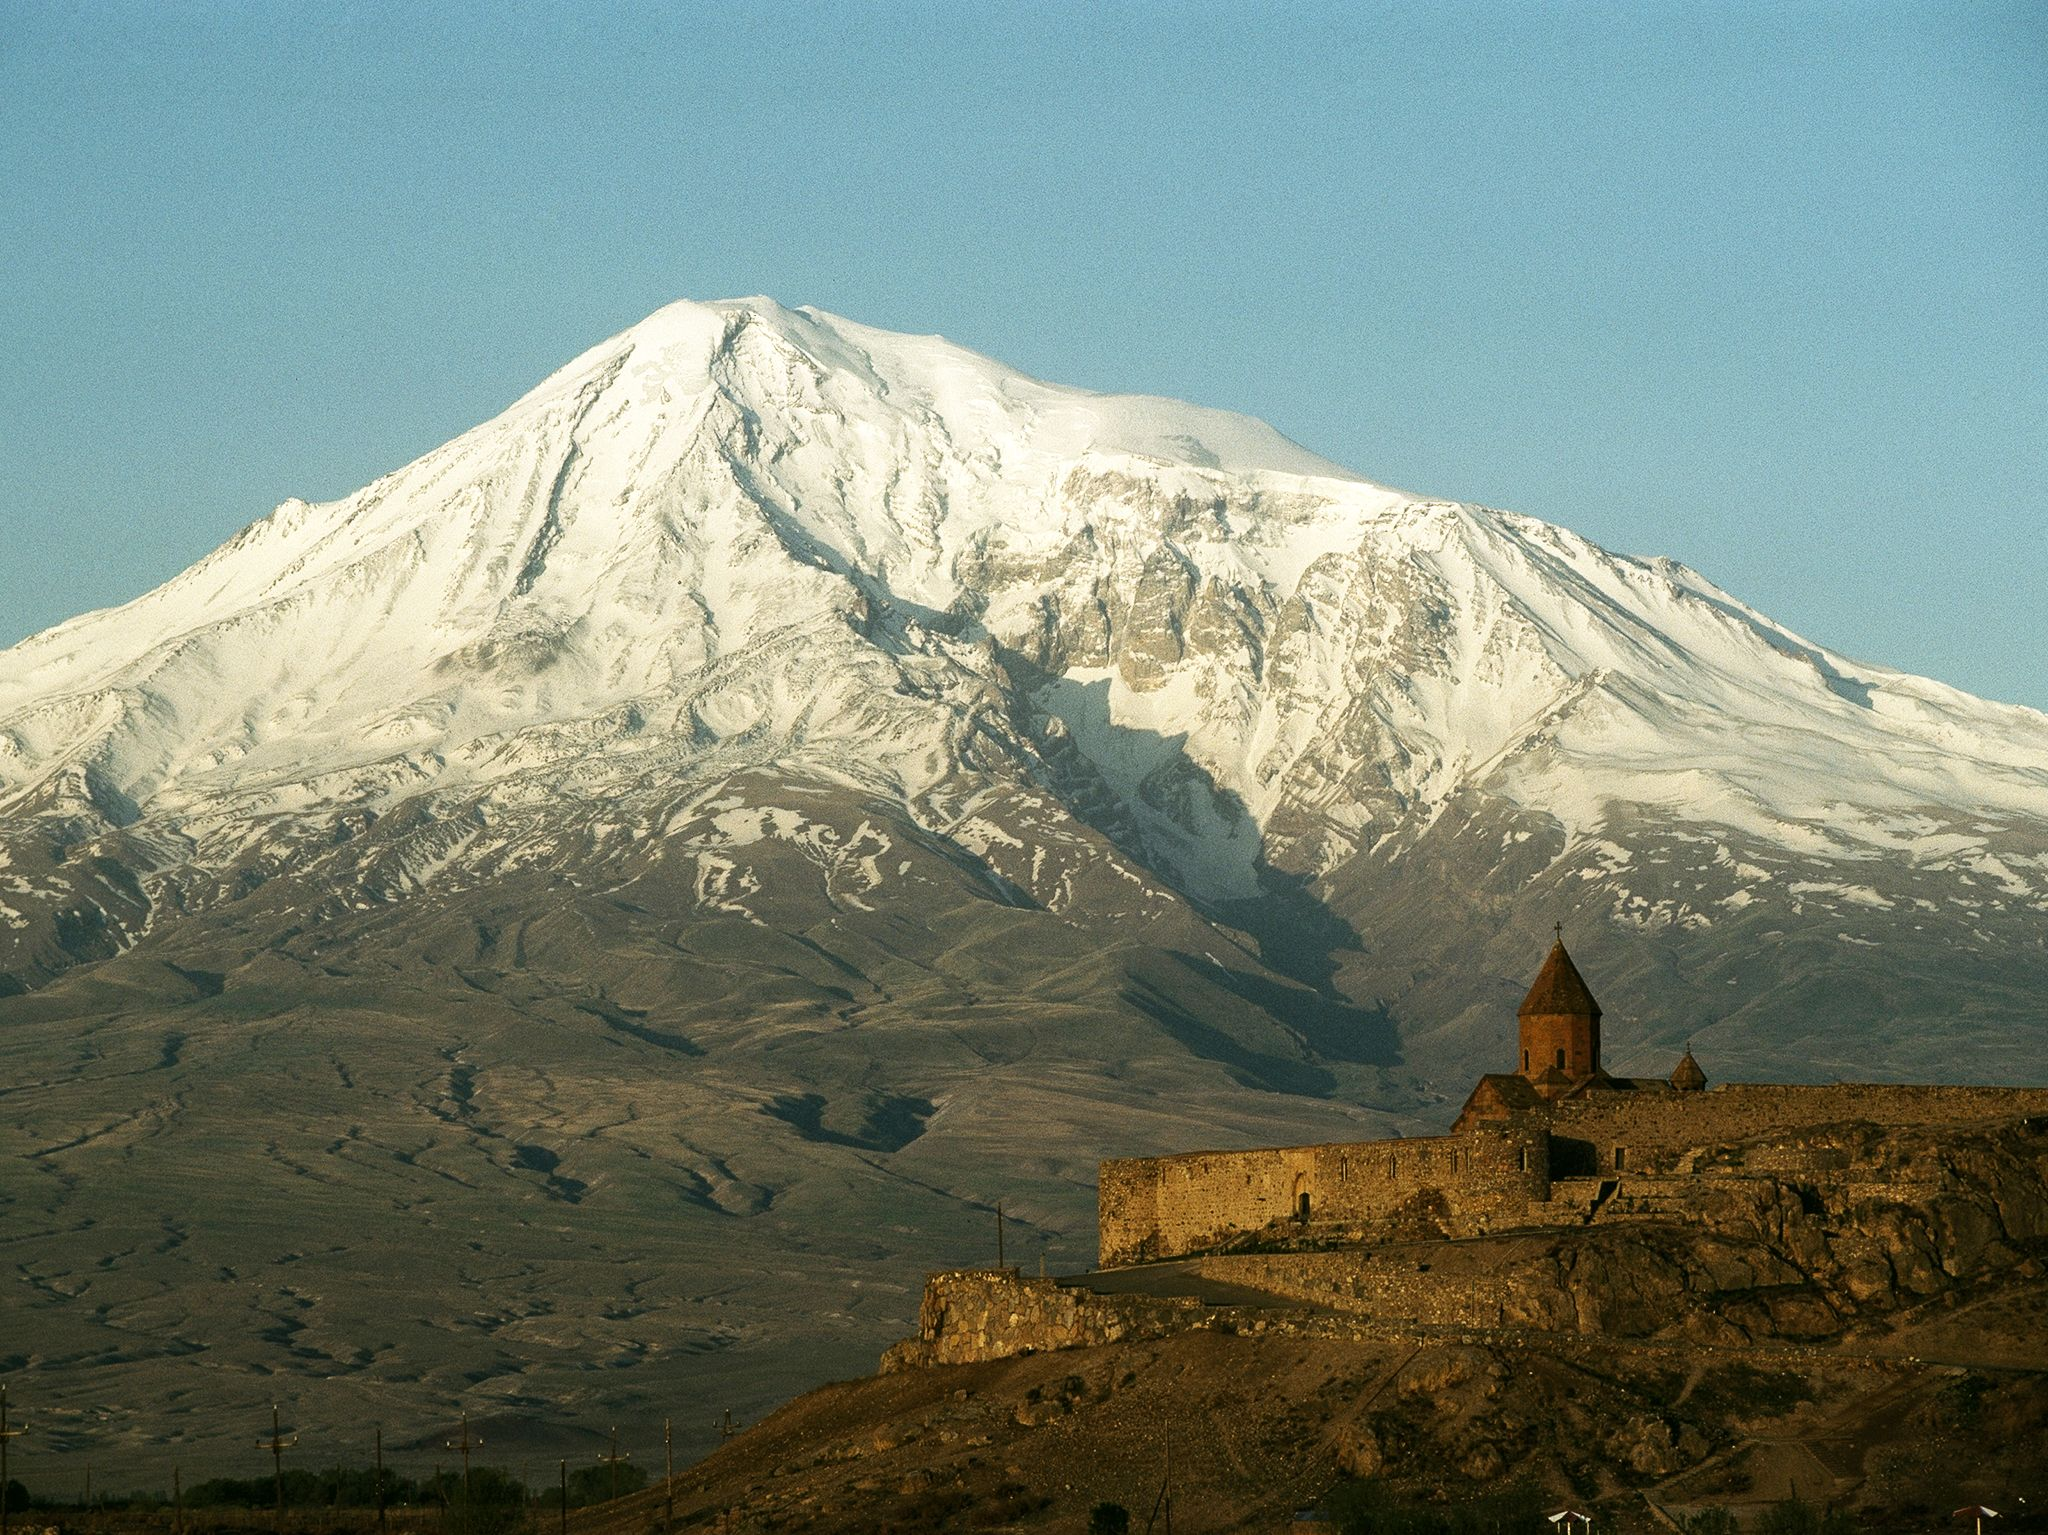 Mount Ararat, Turkey, viewed from Khor Viraph. This image is from Riddles of the Bible. [Photo of the day - August 2017]